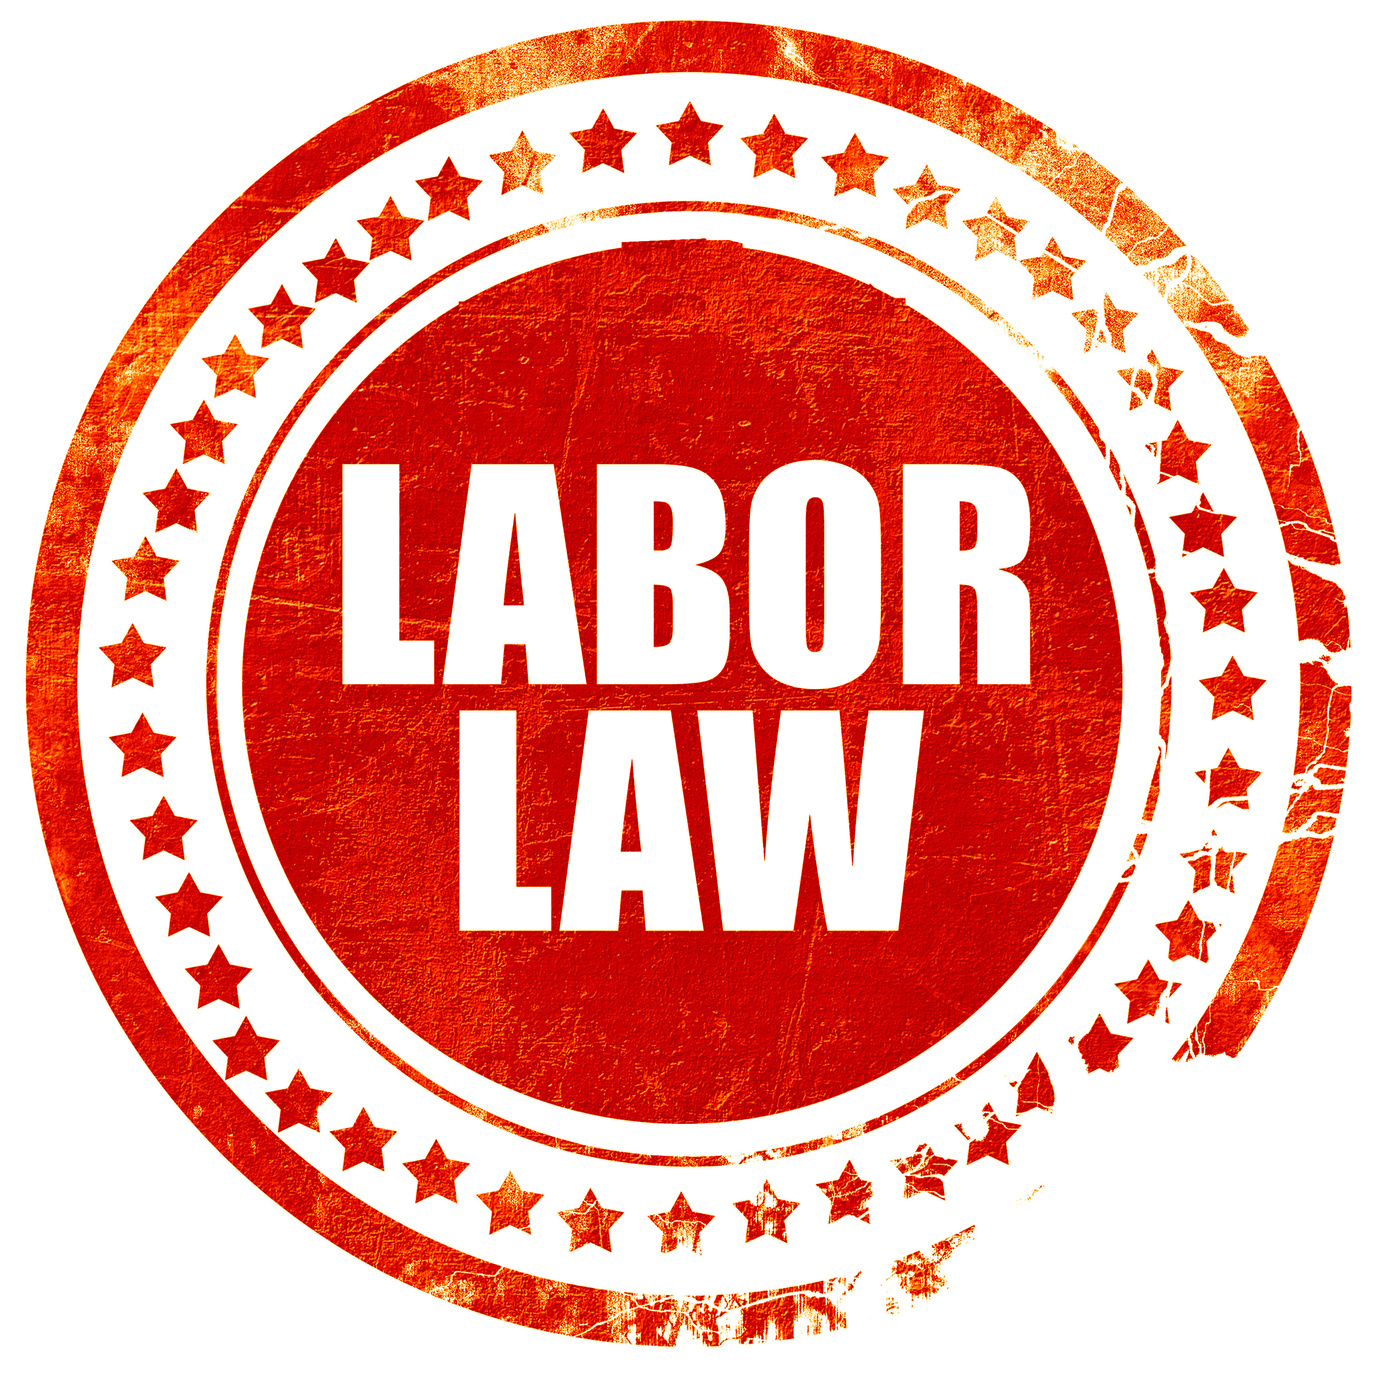 labor law, isolated red stamp on a solid white background